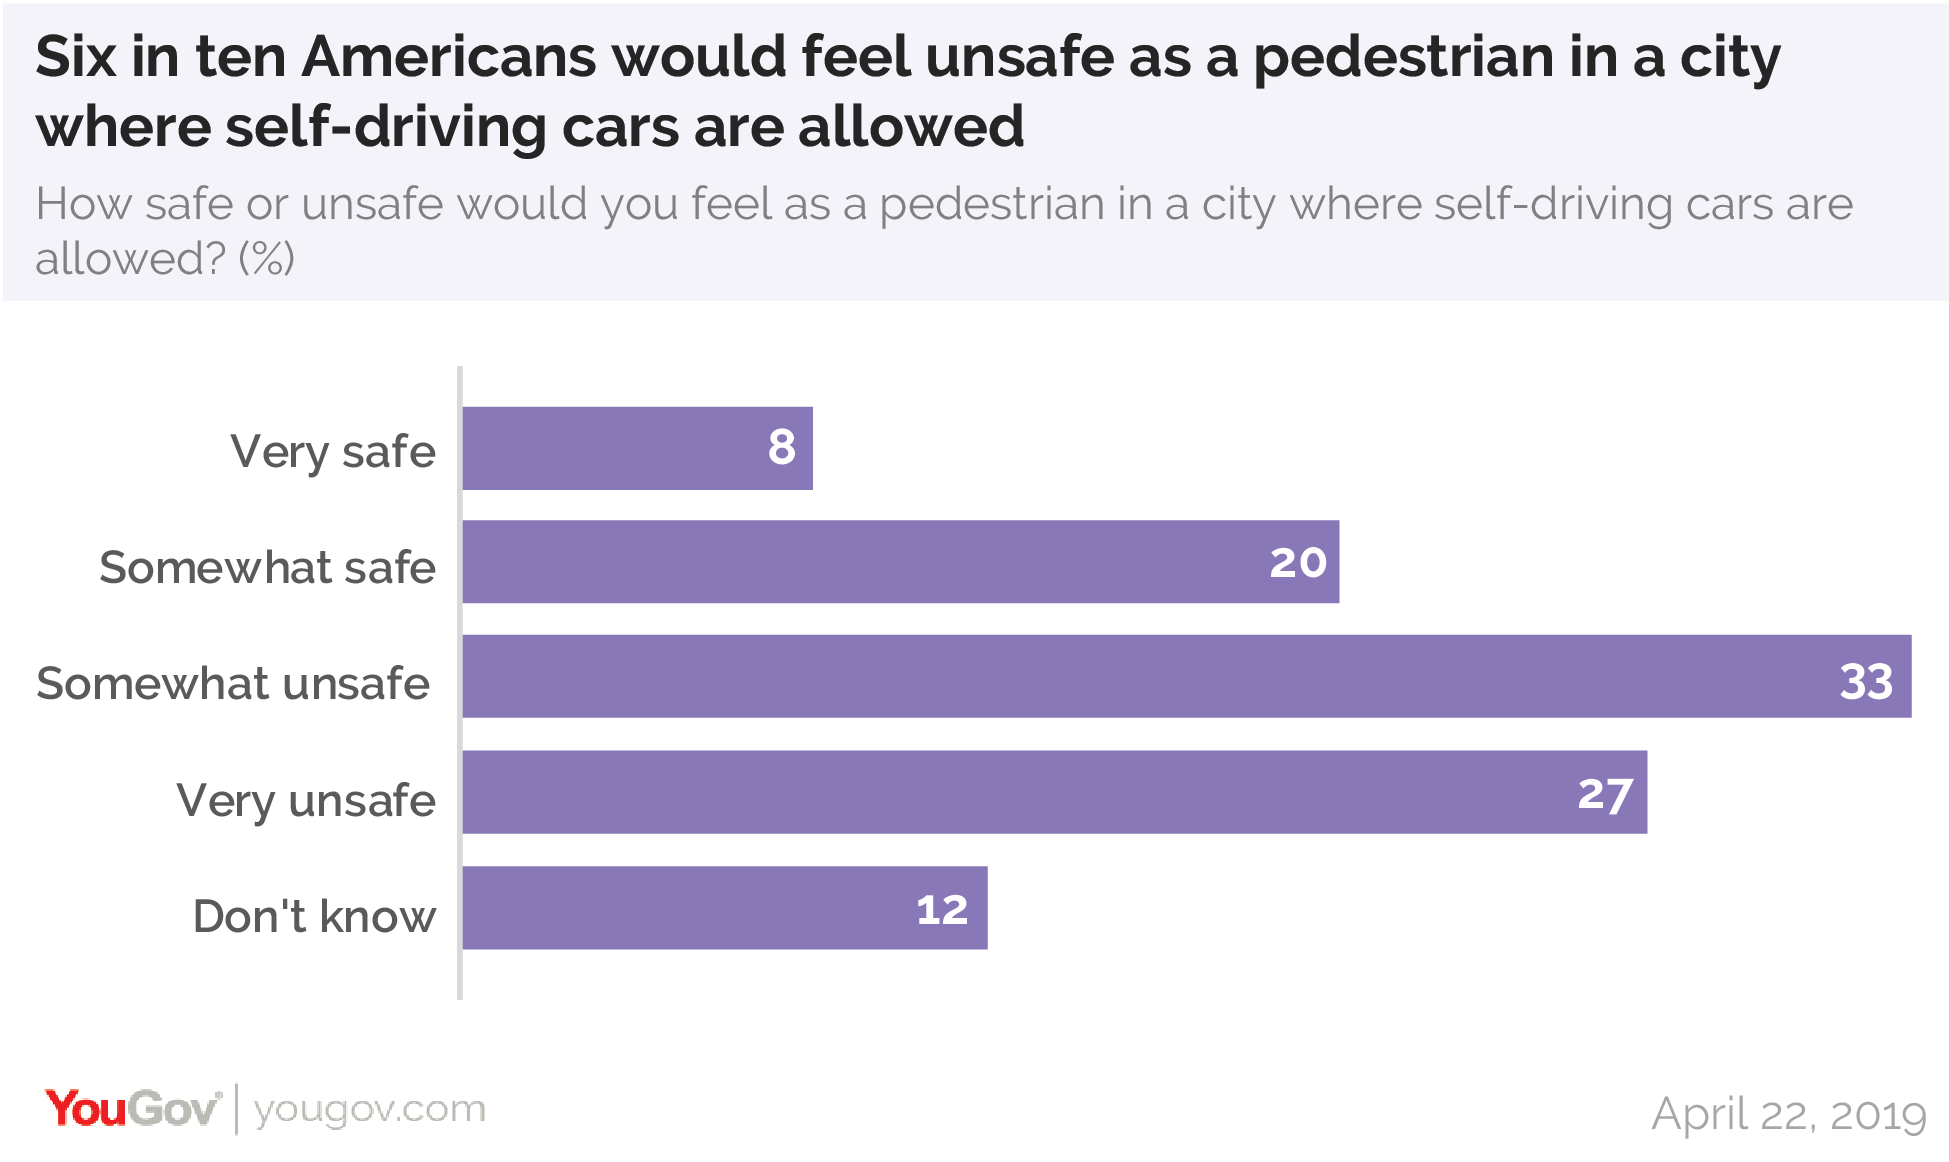 Six in ten Americans would feel unsafe as a pedestrian in a city where self-driving cars are allowed